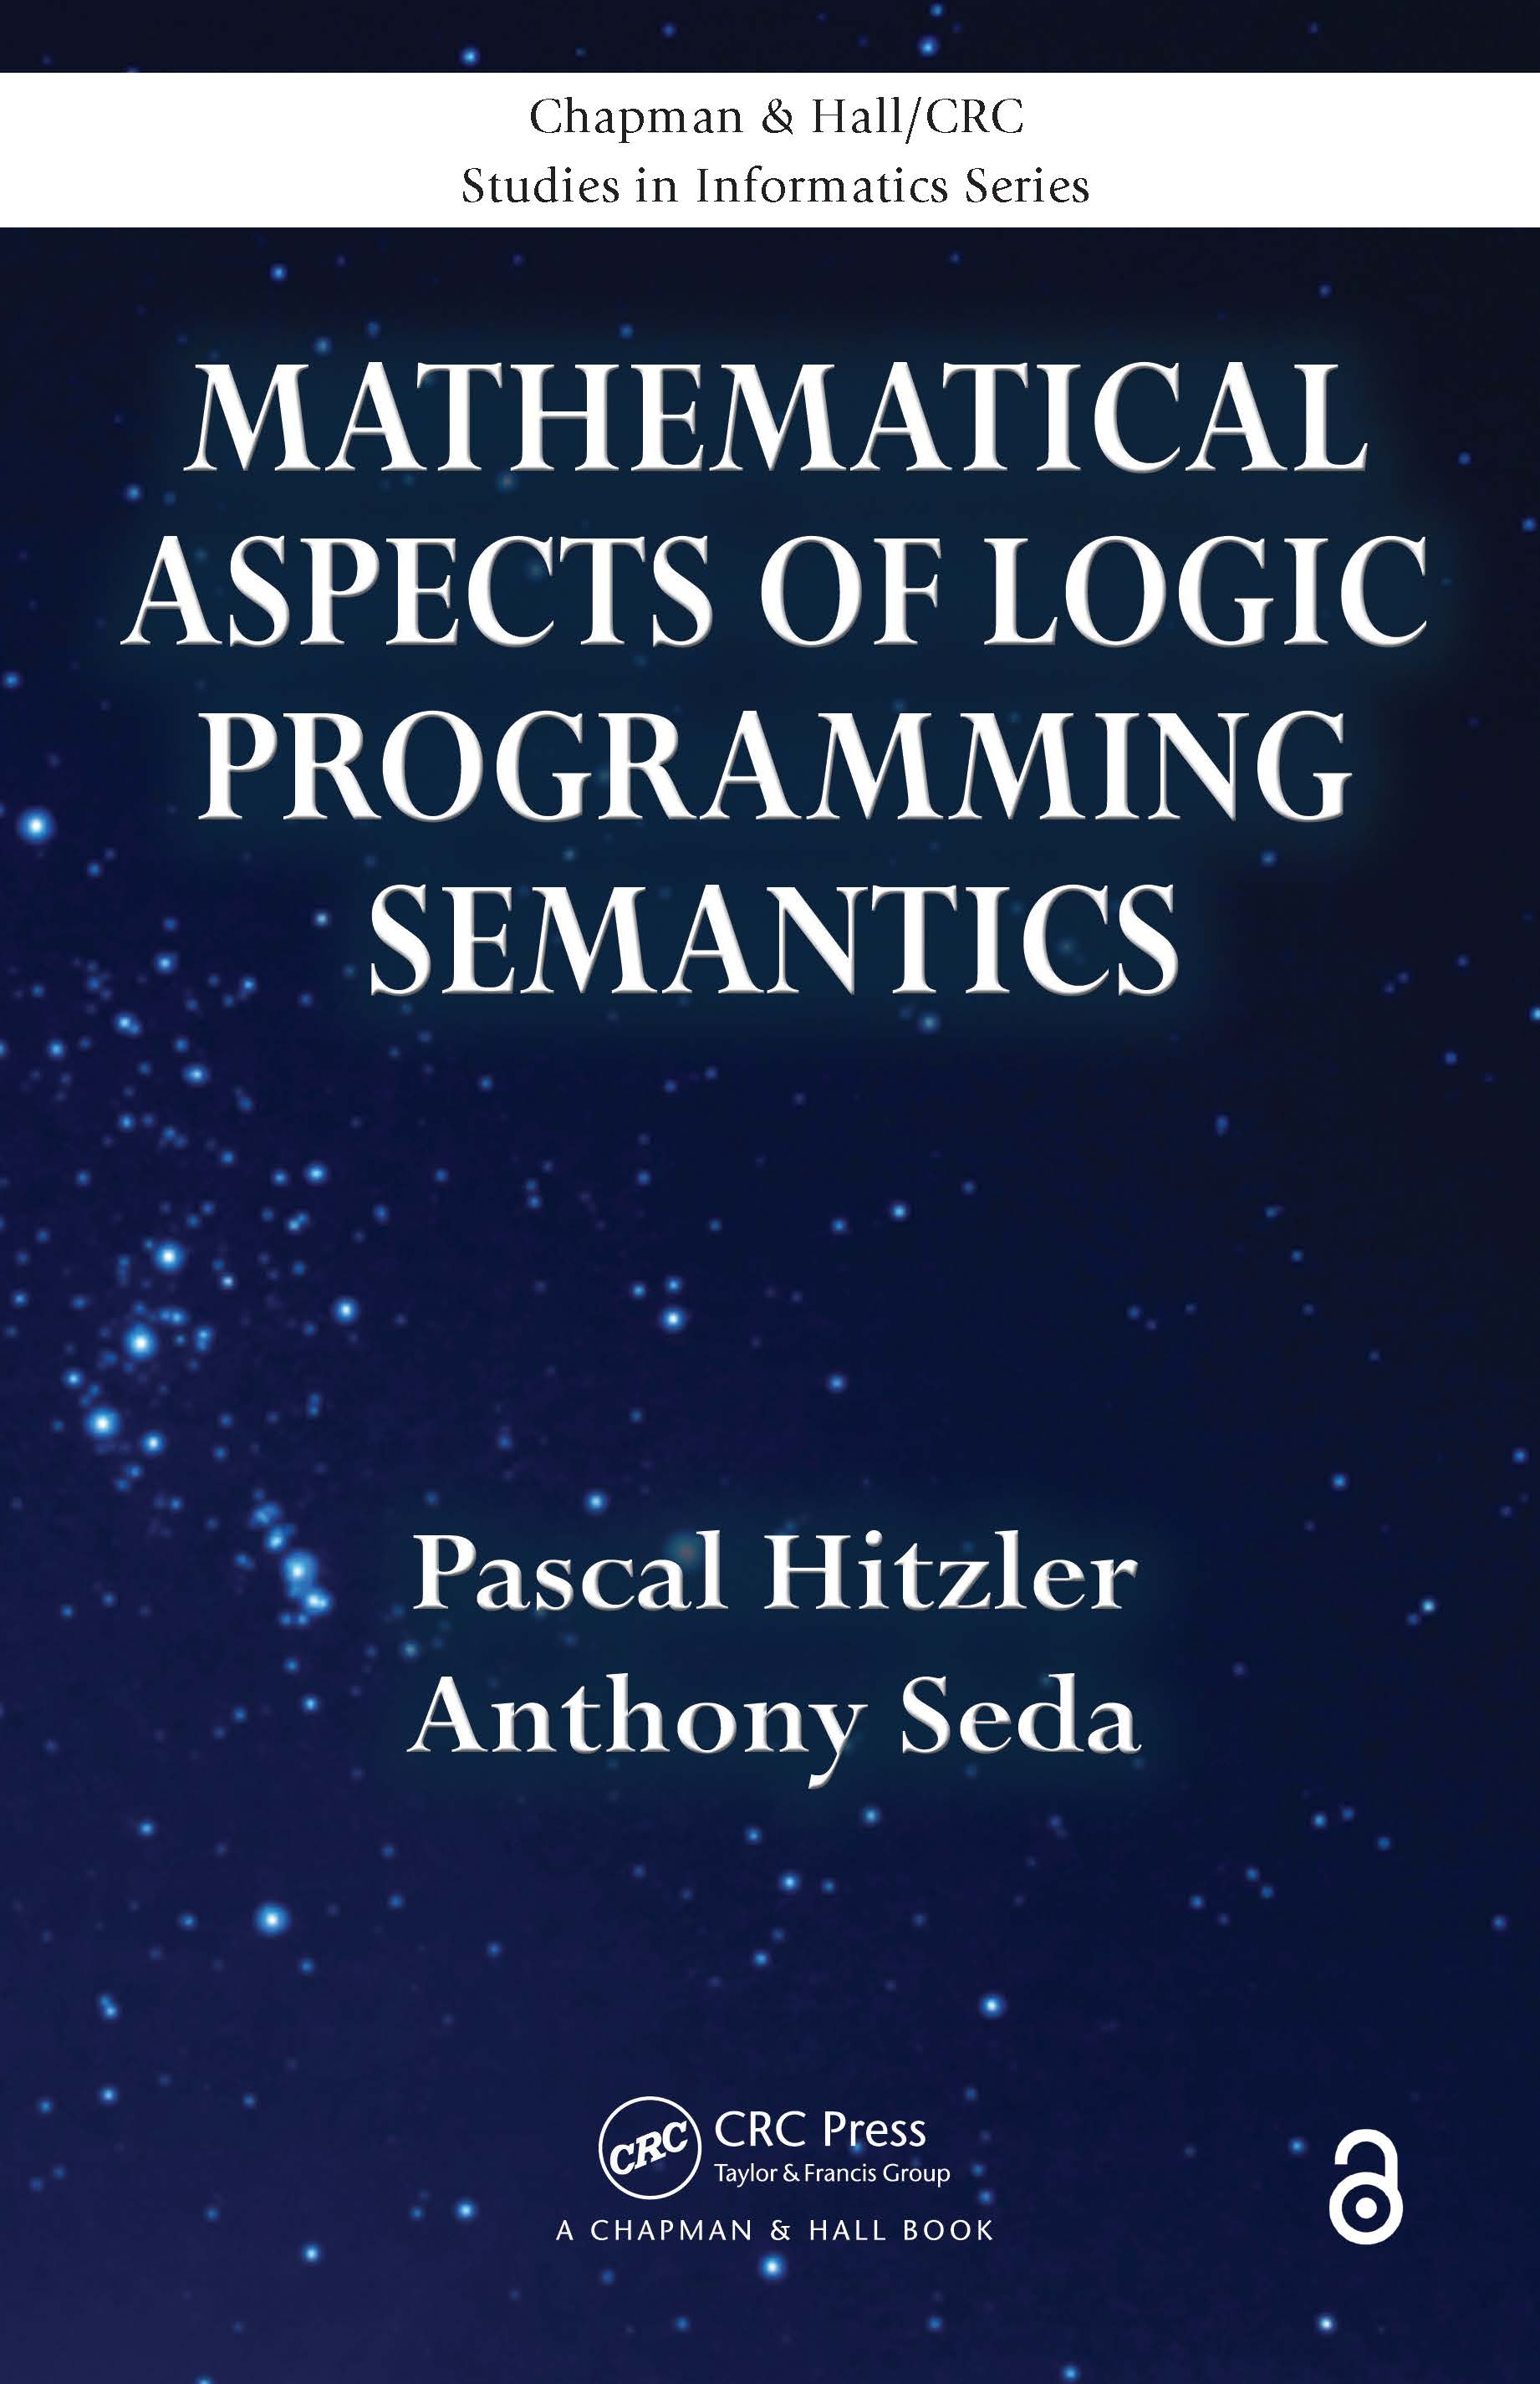 Mathematical Aspects of Logic Programming Semantics: 1st Edition (Paperback) book cover